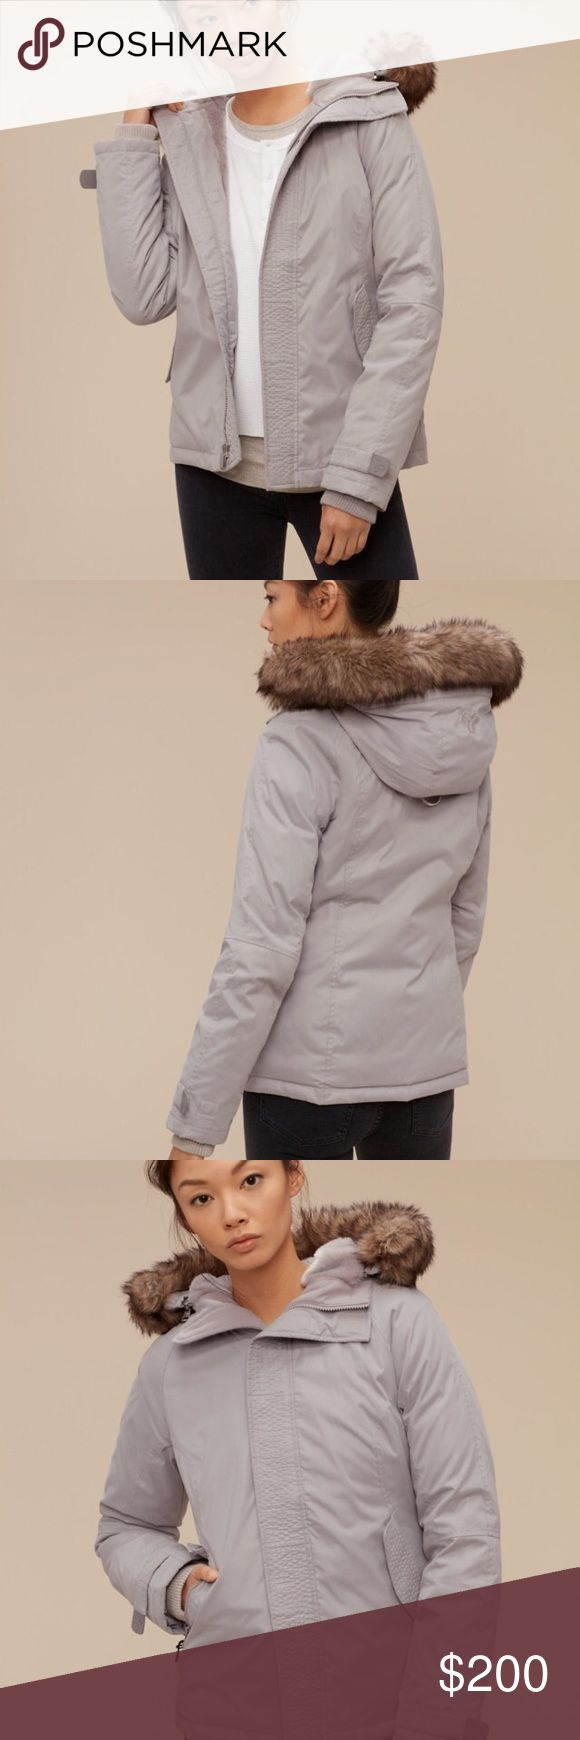 Aritzia goose down coat Brand new, never worn, with tags still on, pale grey goose down fitted parka coat, from Canadian brand Aritzia. Size medium (but would fit if you wear either a small or a medium normally)! This parka contains 100% responsibly sourced goose down and has a faux fur lining and detachable faux fur trim. It's a super warm, durable coat so there is no need to layer underneath, it's that cosy! It's also machine-washable which is so handy. Was $250 at full price! Aritzia…